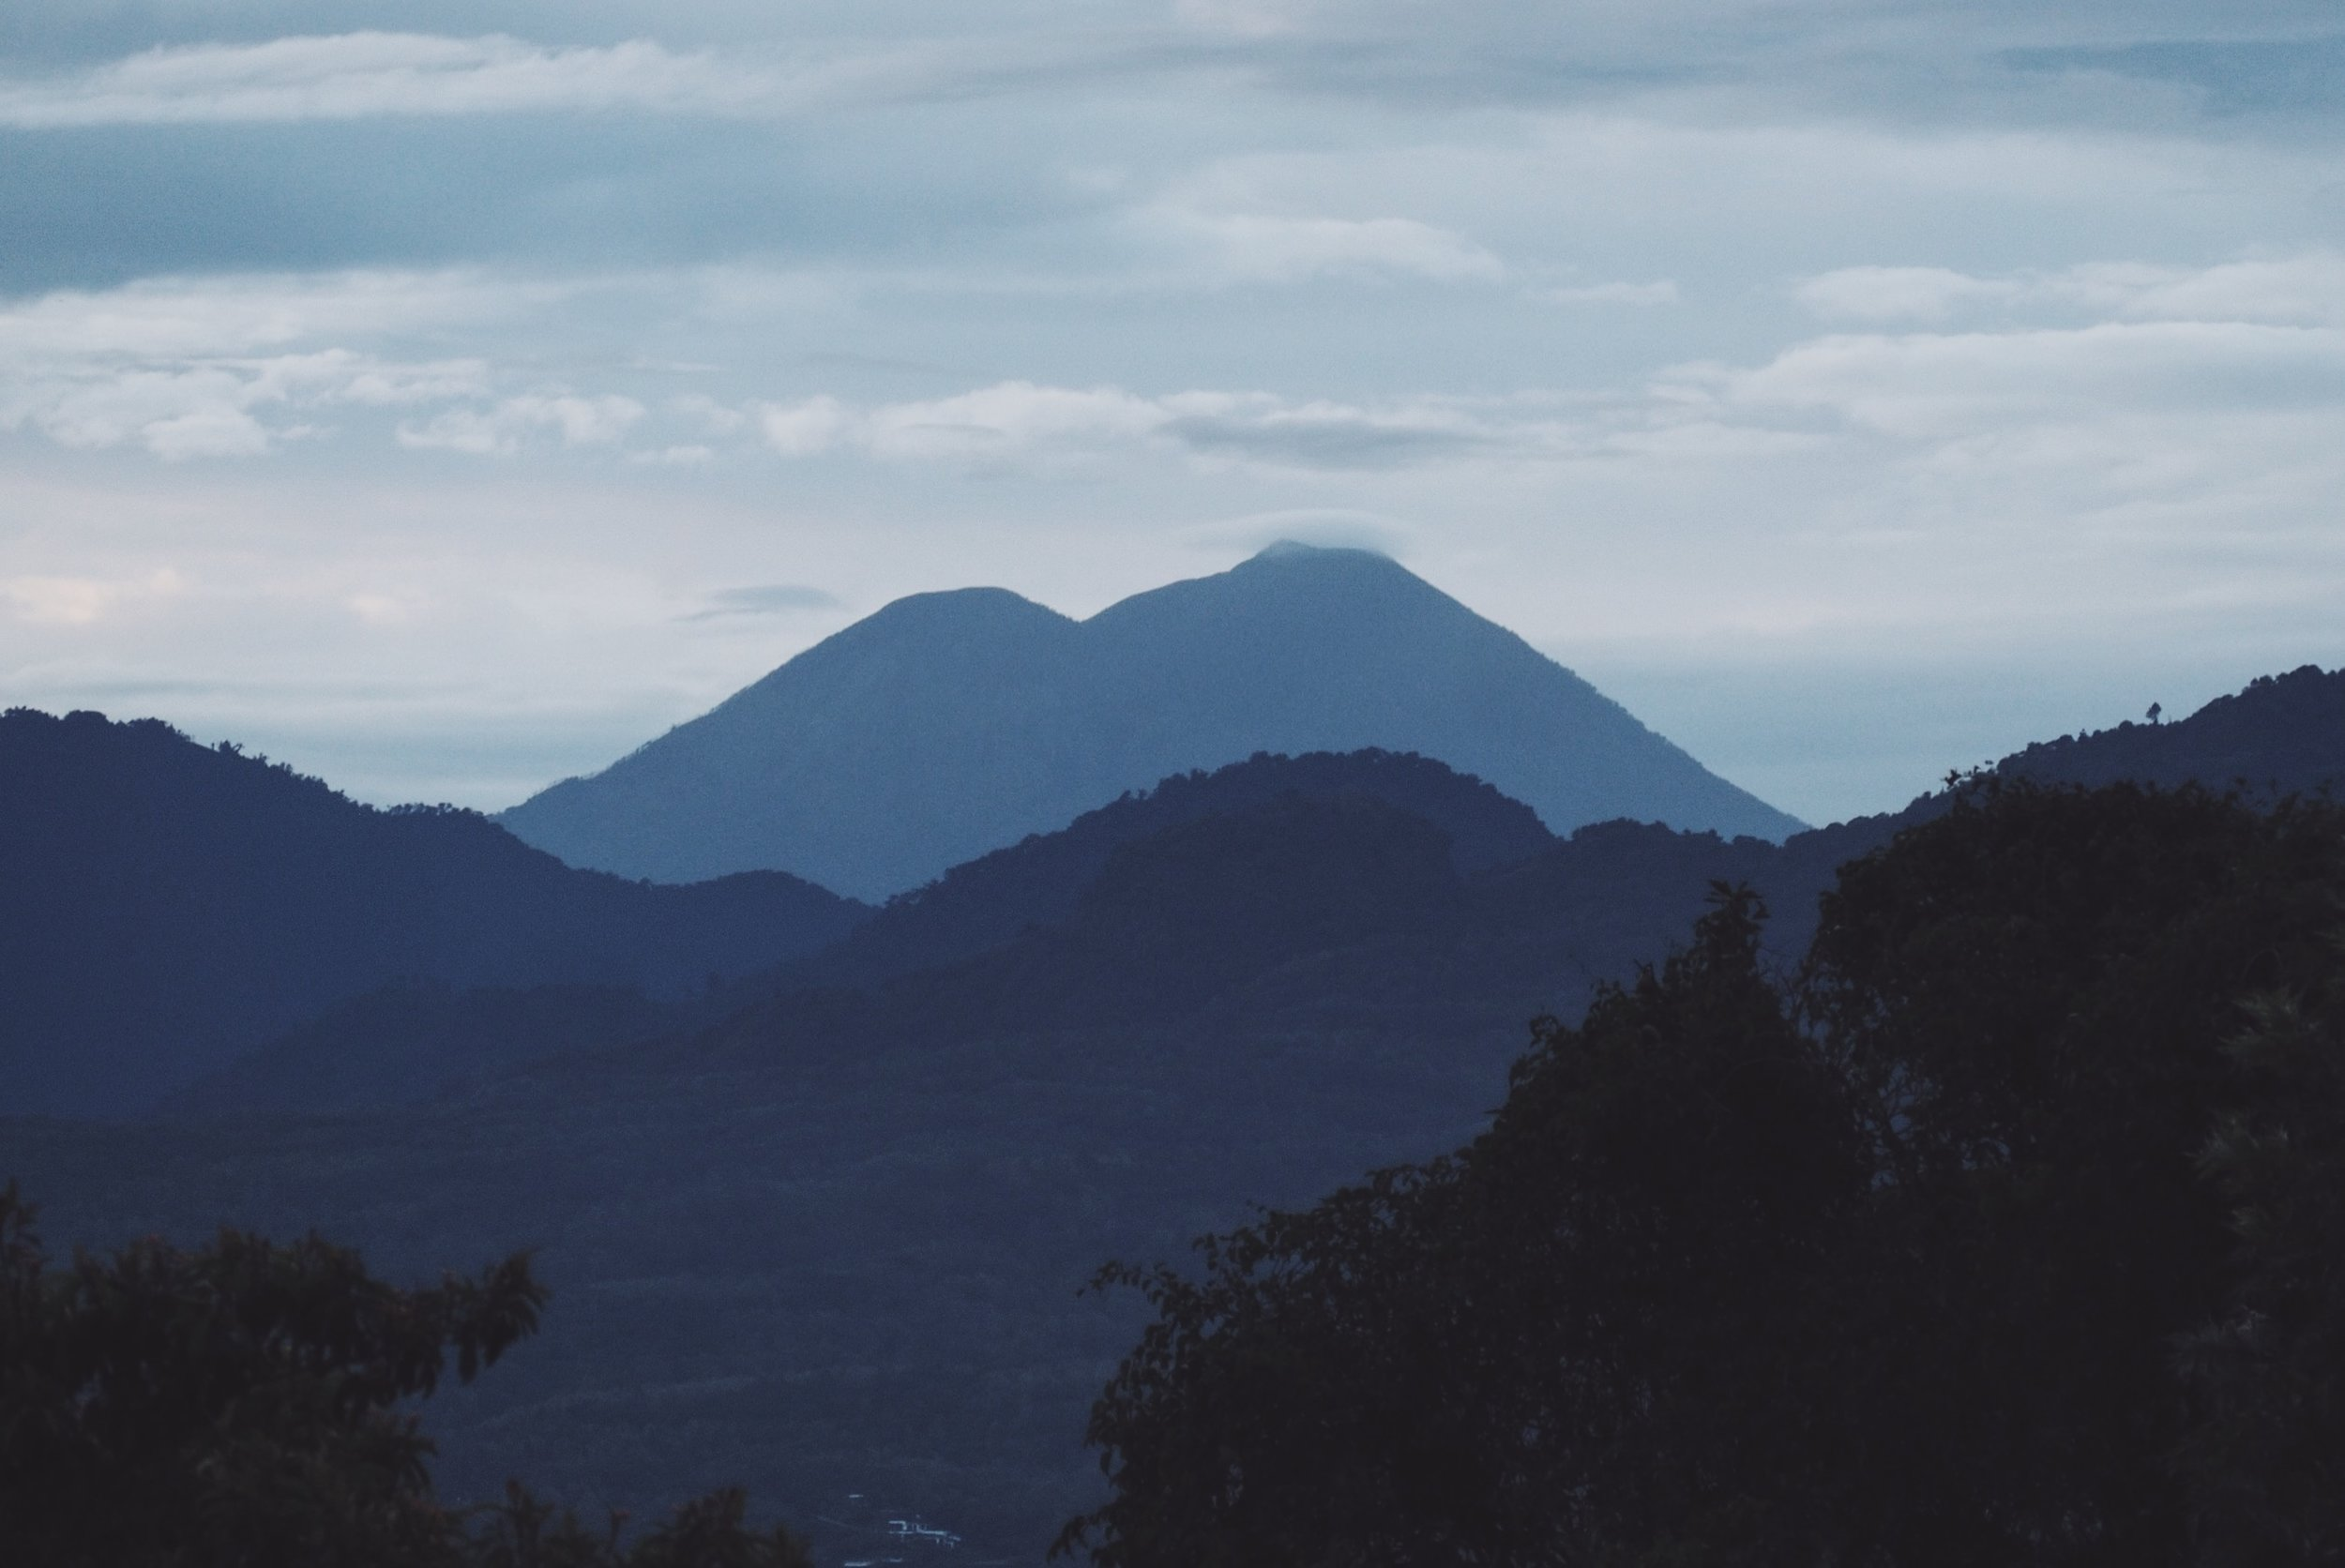 Mountains and volcanoes of Atitlan